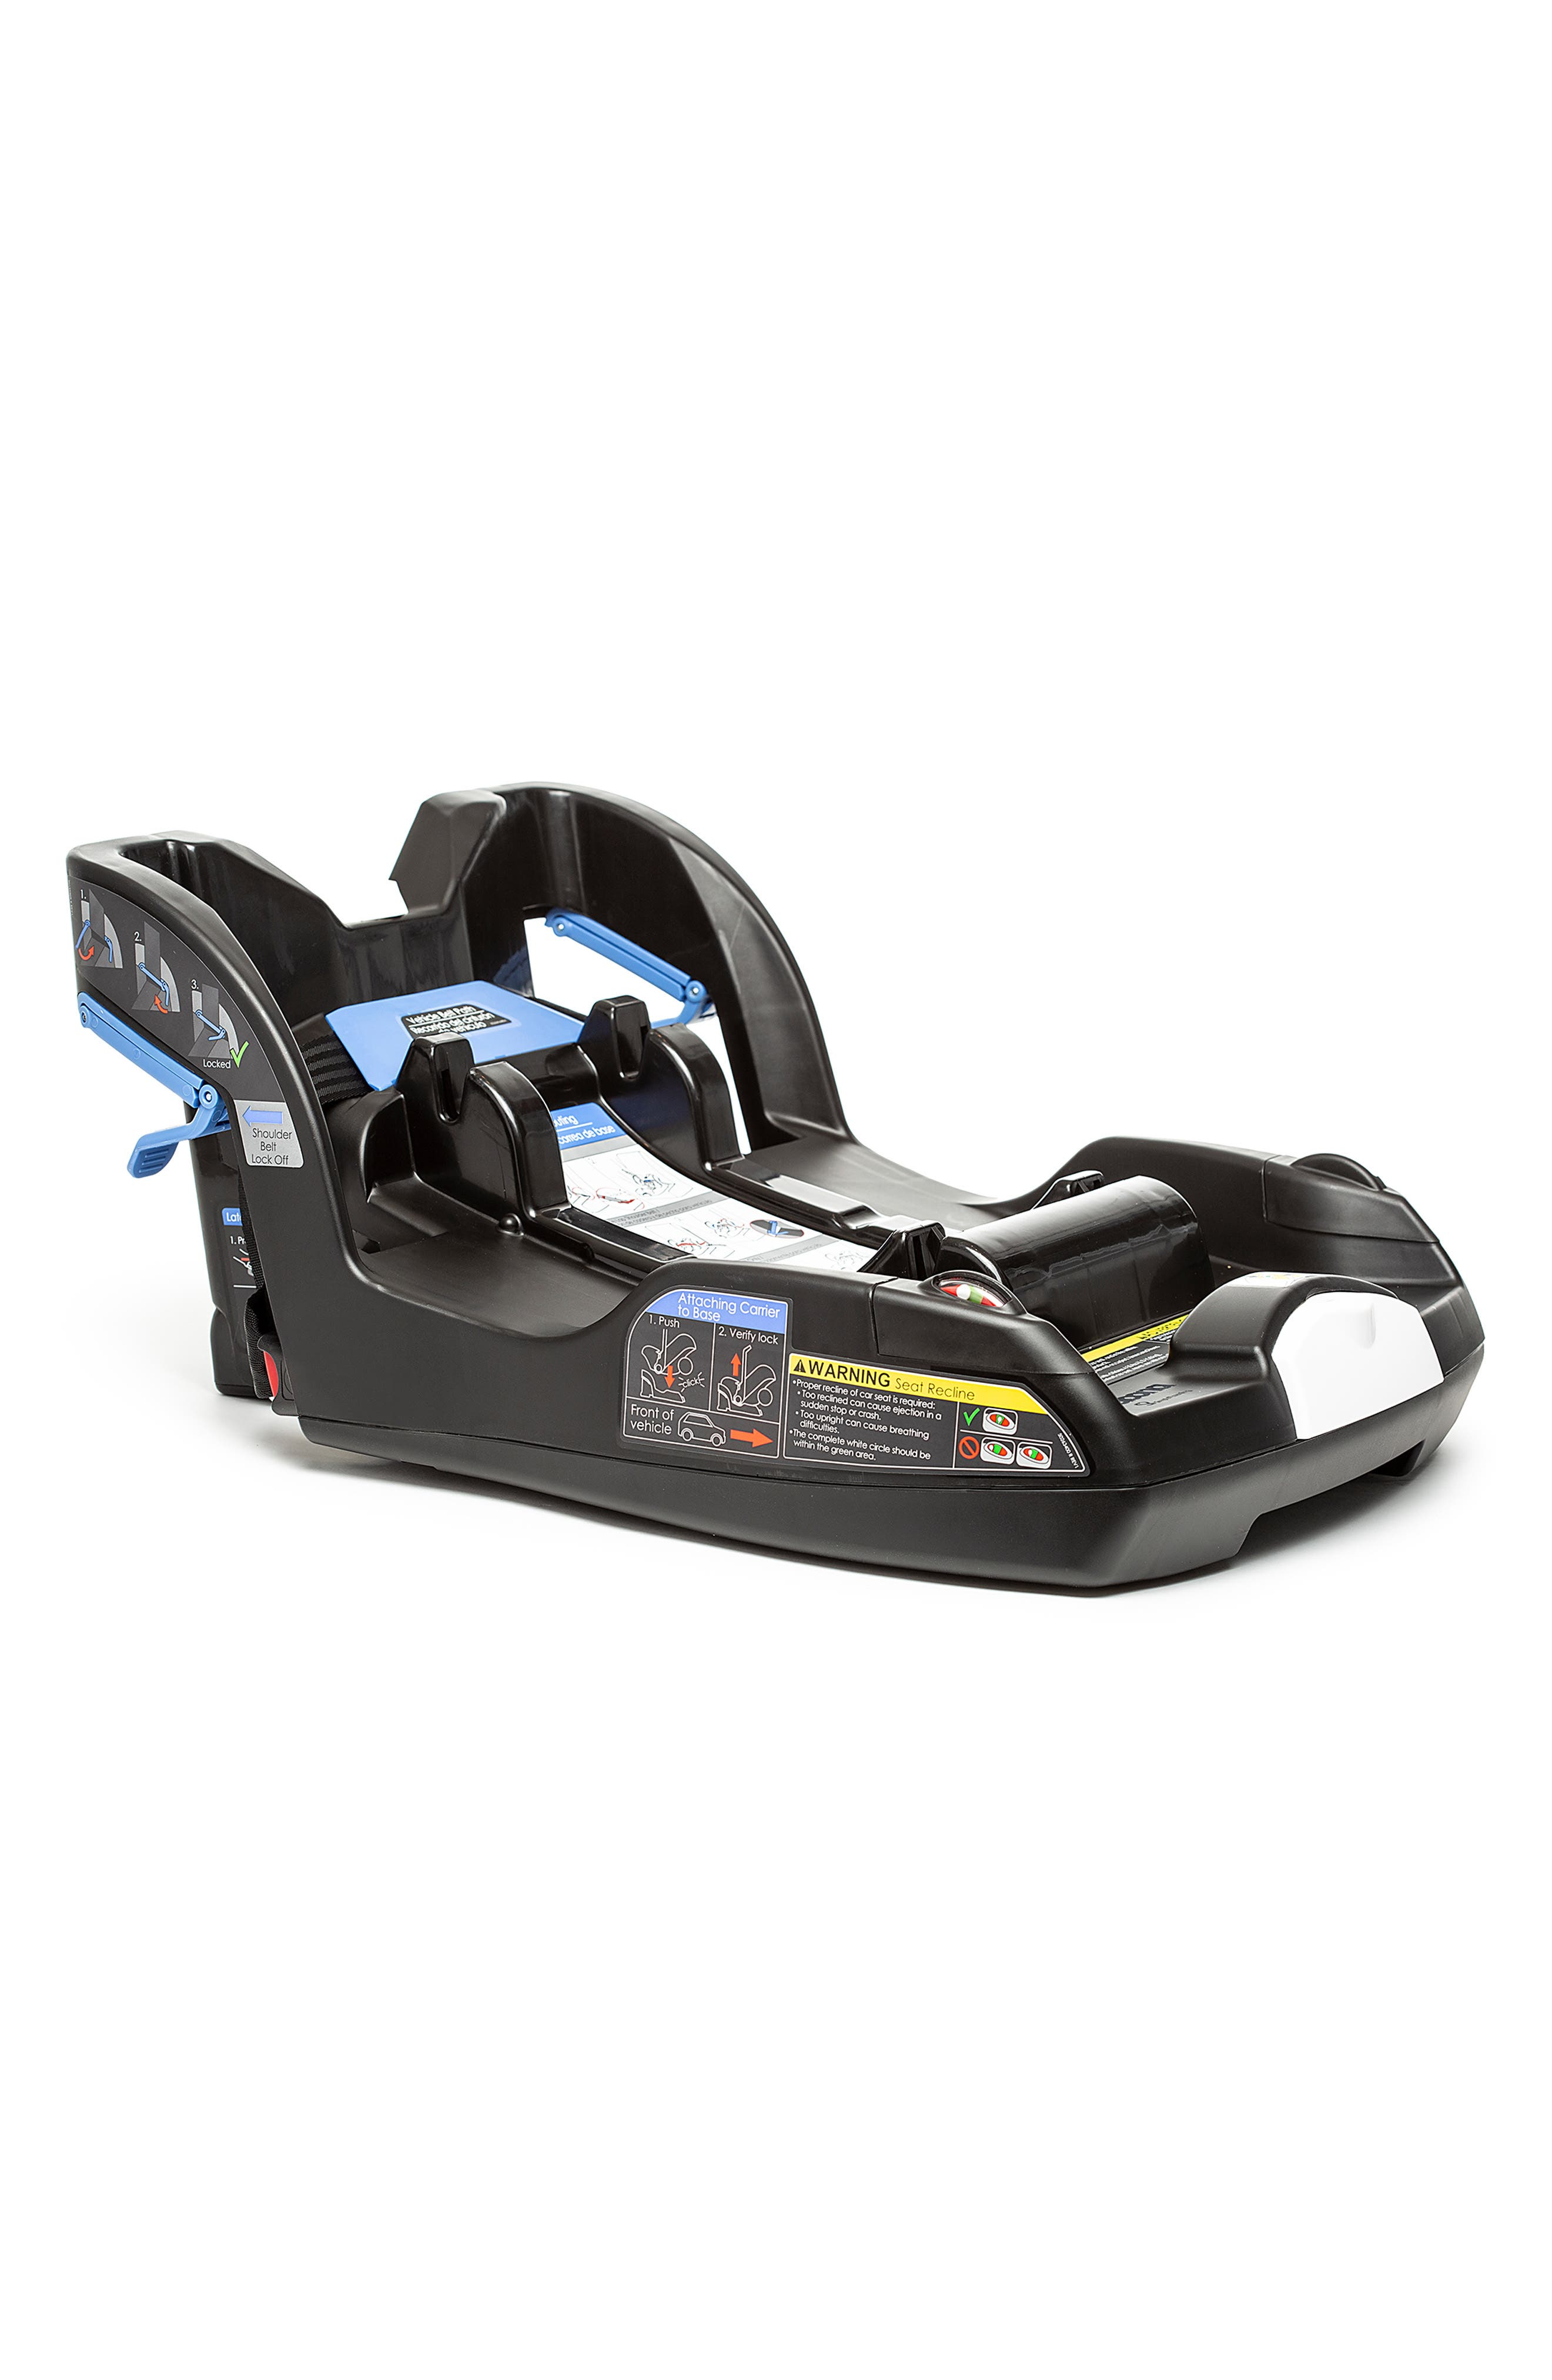 Convertible Infant Car Seat/Compact Stroller System with Base,                             Alternate thumbnail 3, color,                             BLACK/NIGHT